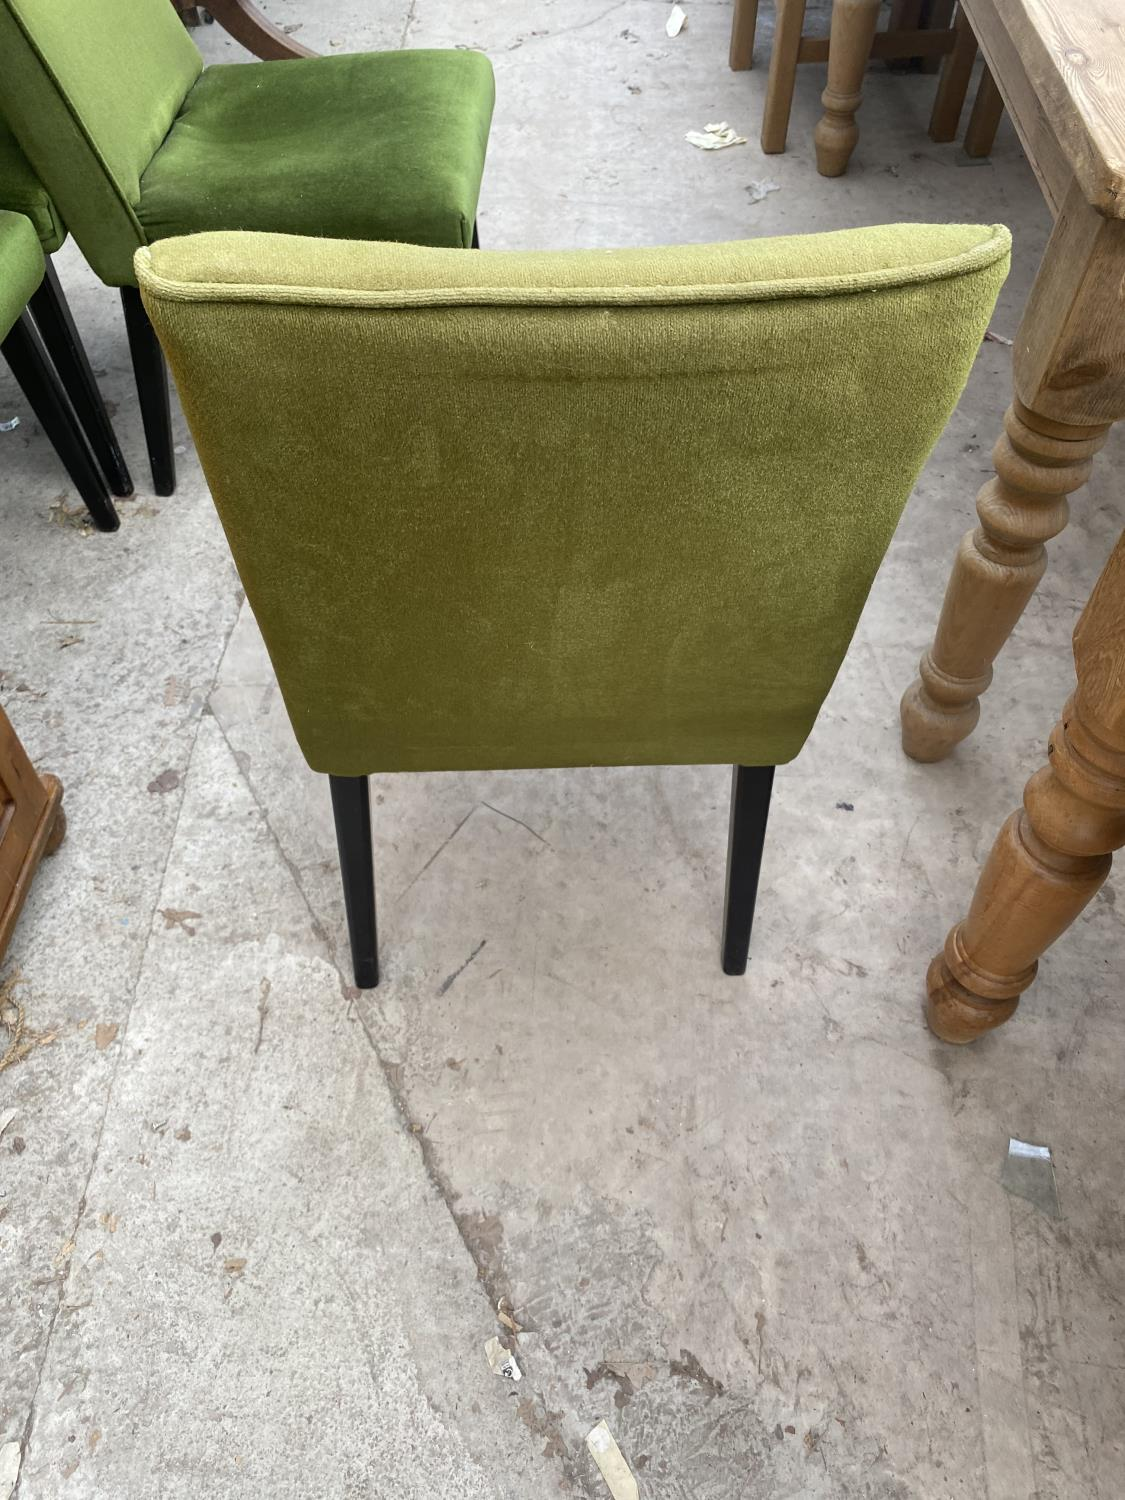 FOUR MID 20TH CENTURY DINING CHAIRS WITH GREEN UPHOLSTERED AND BLACK PAINTED LEGS - Image 3 of 4